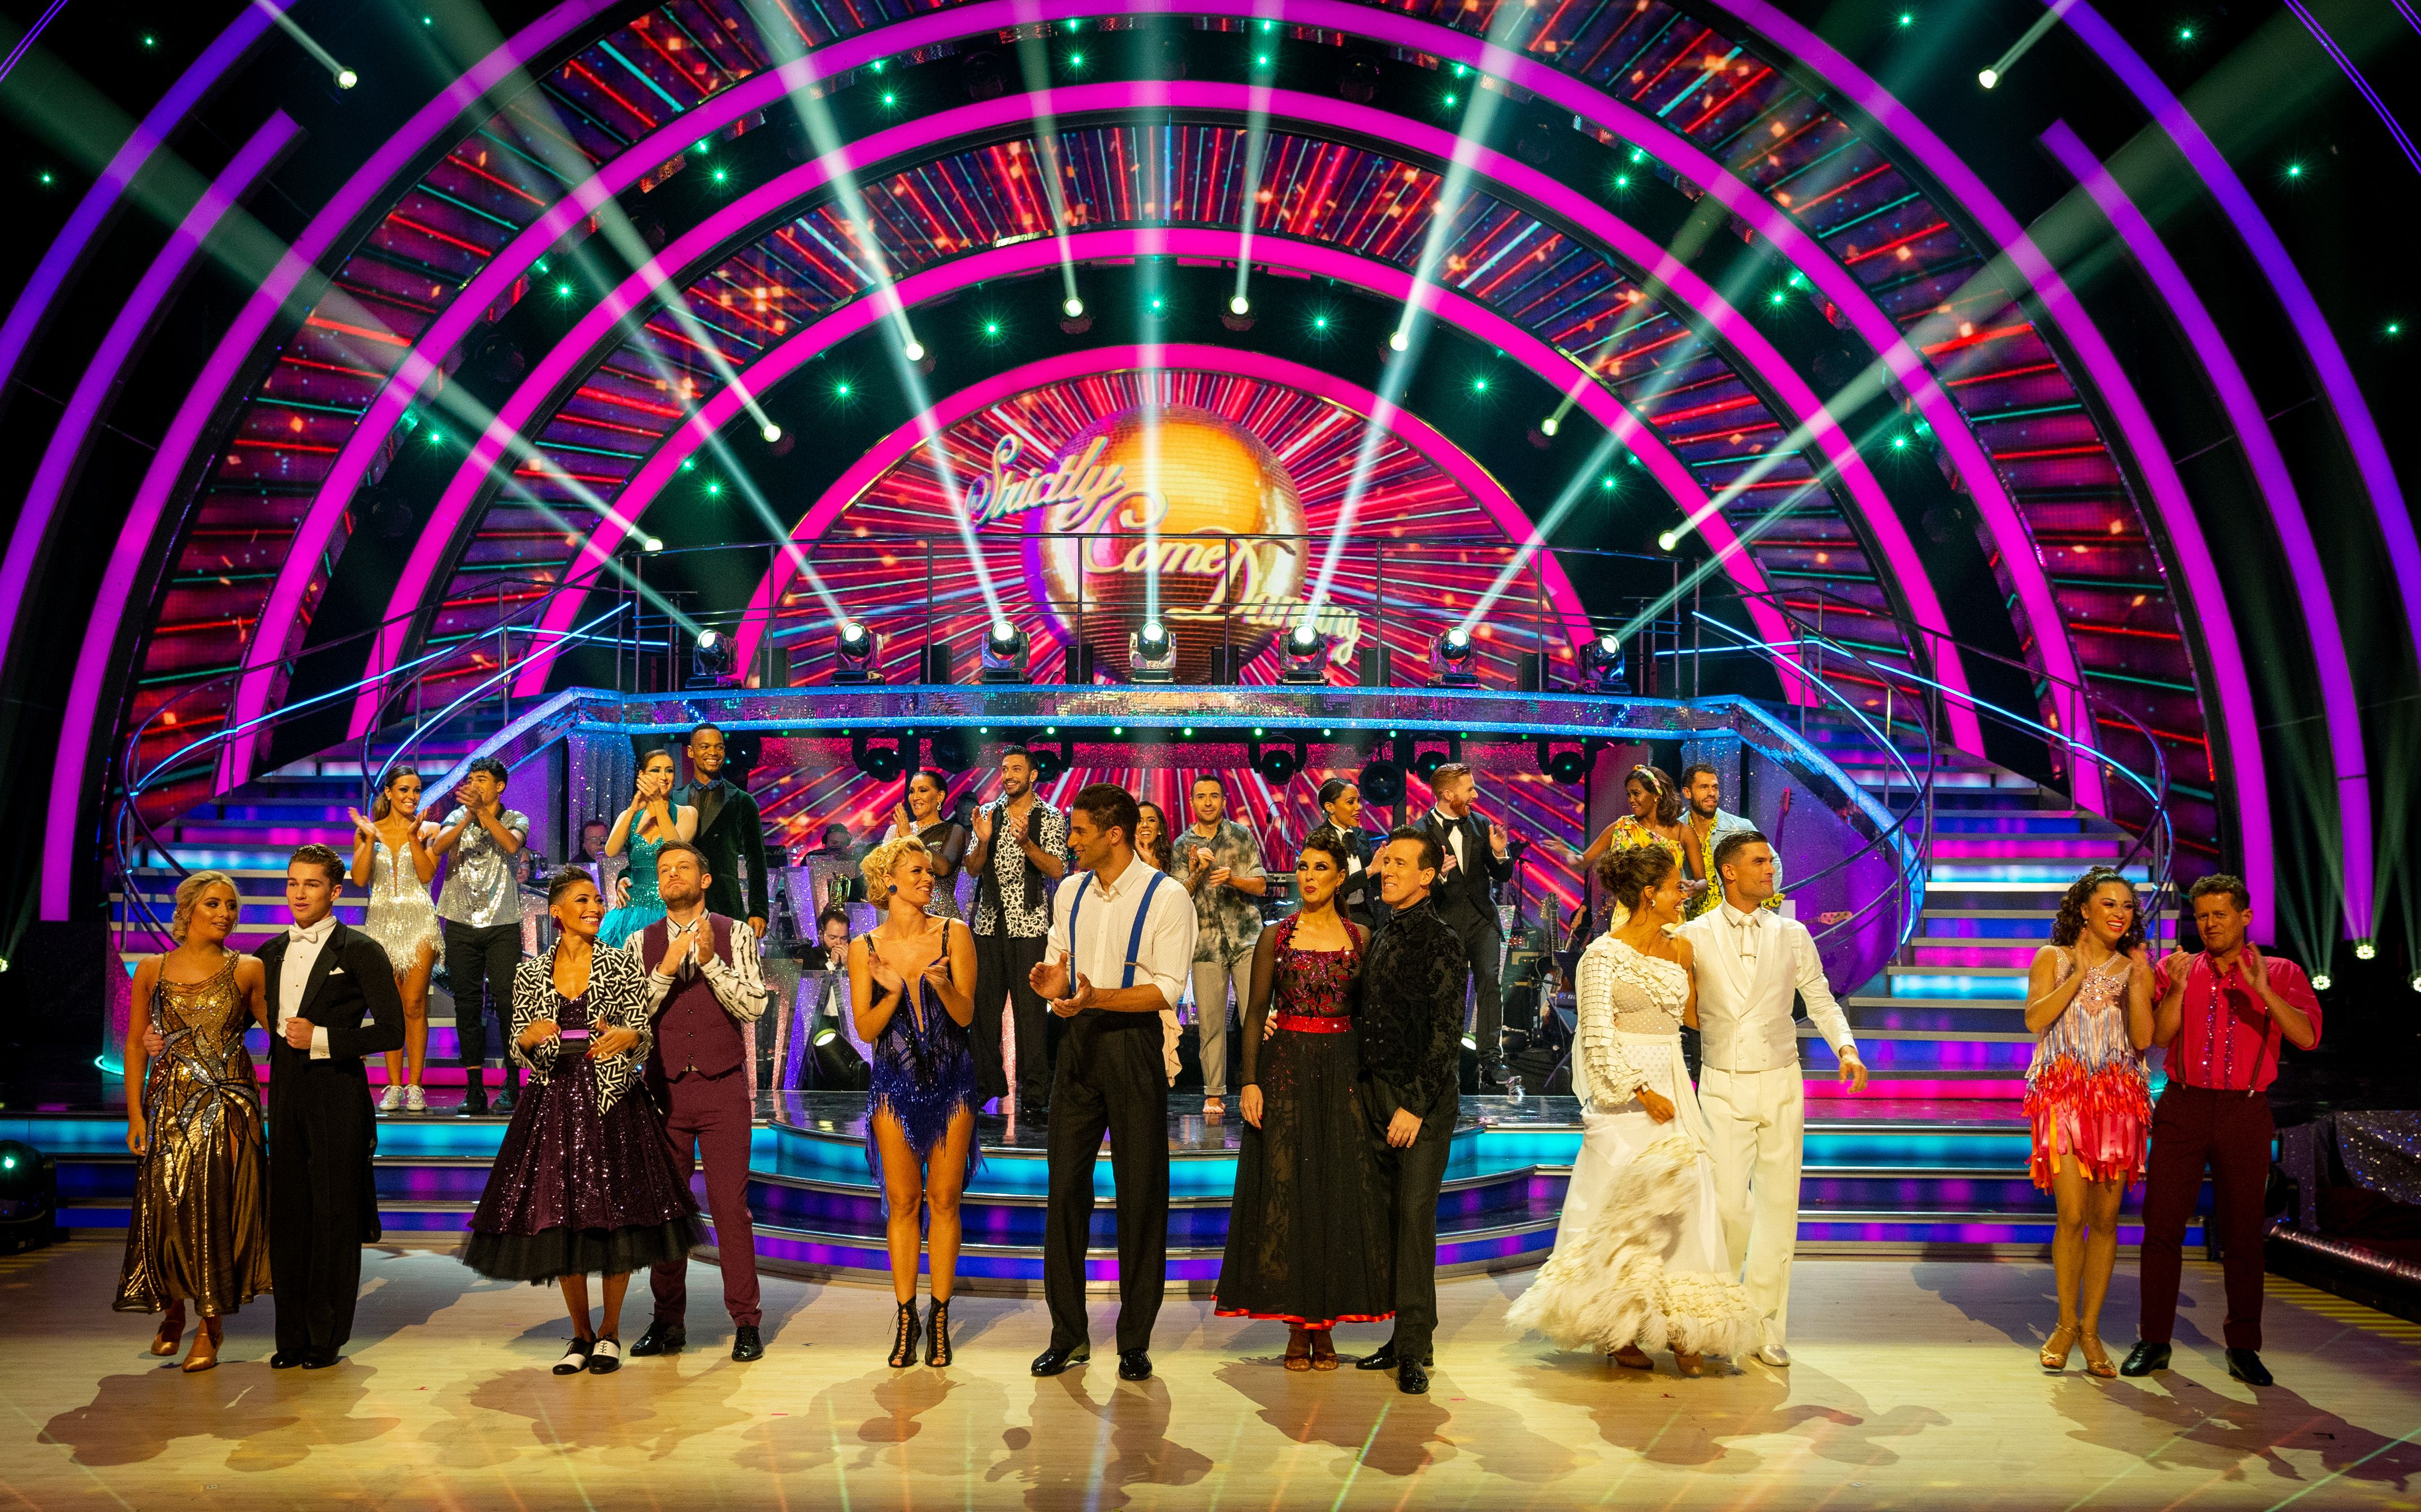 The Strictly Come Dancing live tour celebrities have been announced